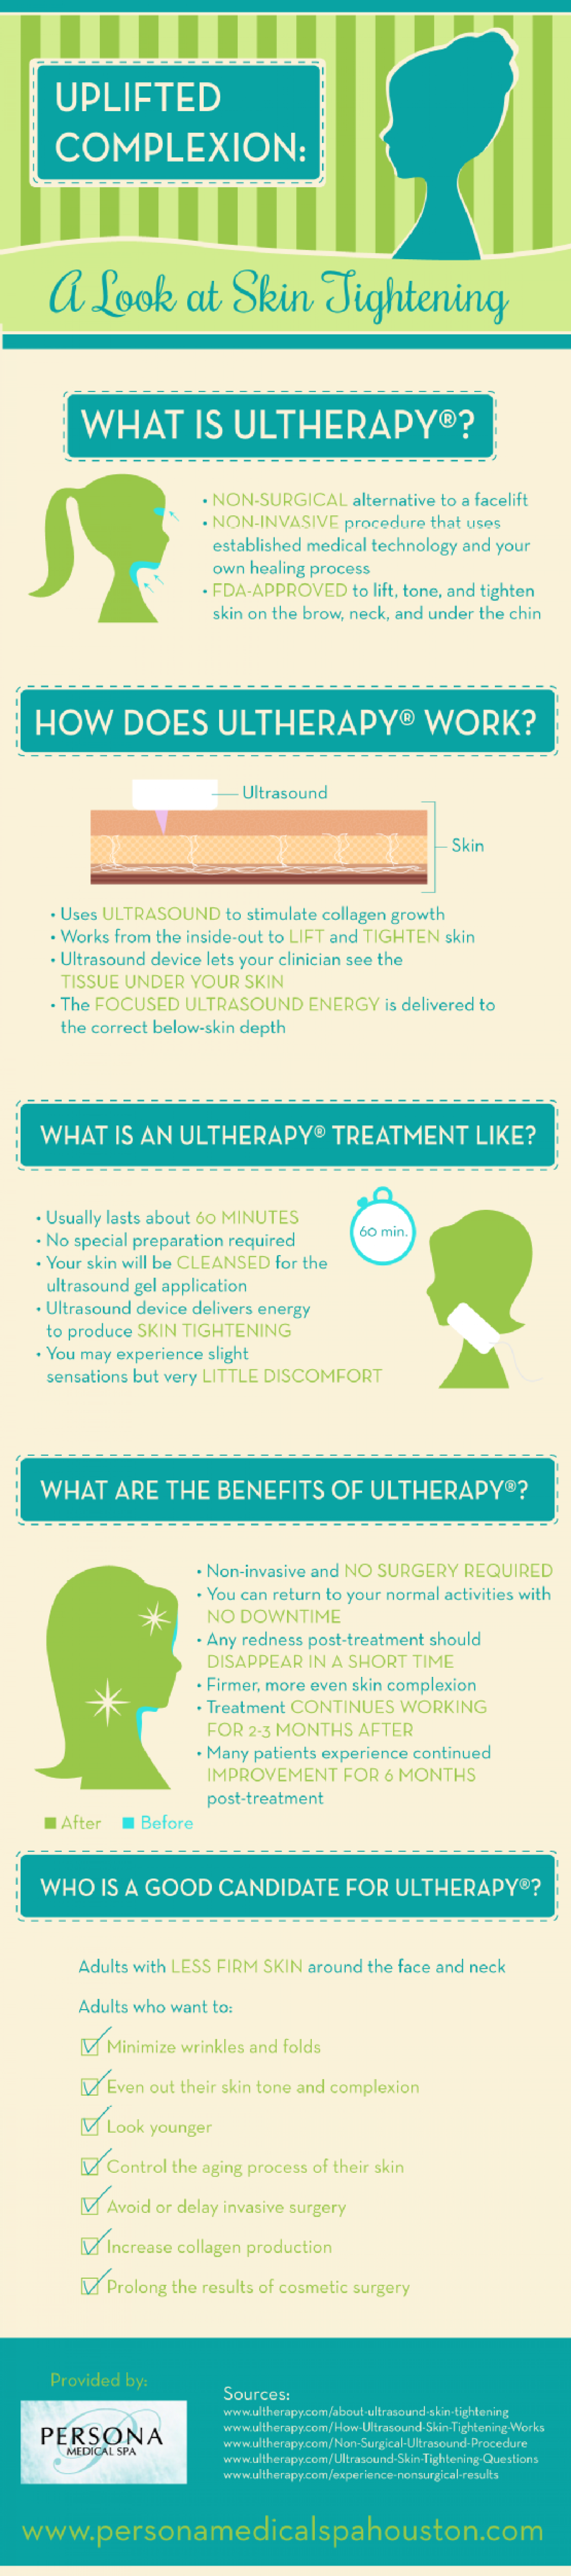 Uplifted Complexion: A Look at Skin Tightening  Infographic